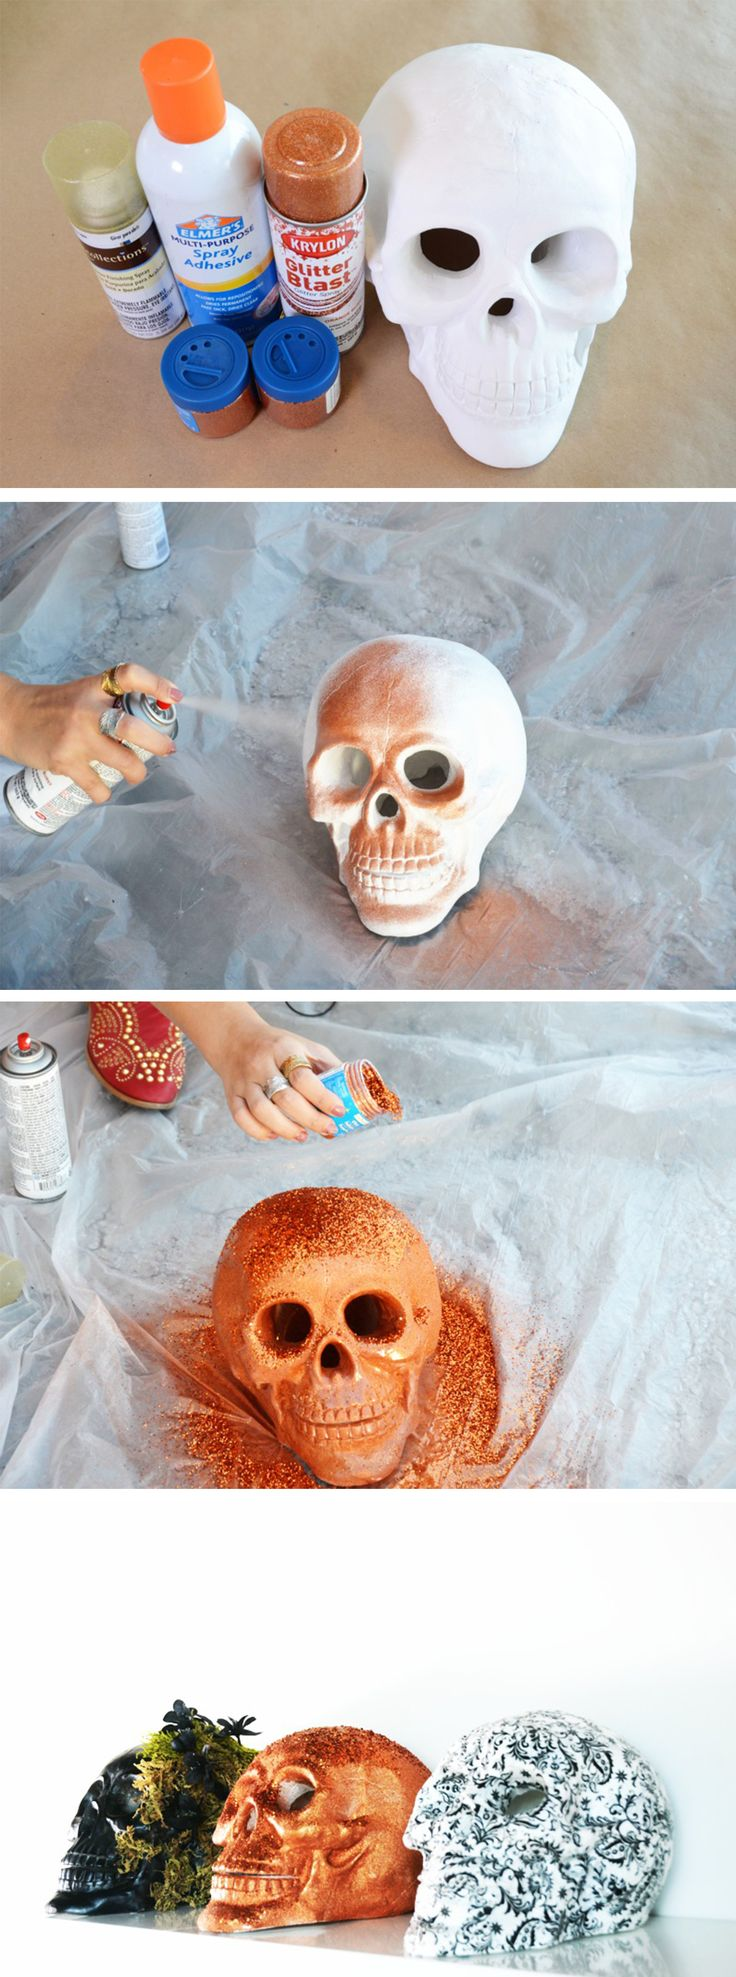 Glittery, glamorous Halloween decor! DIY some skulls with major sparkle for your haunted home!